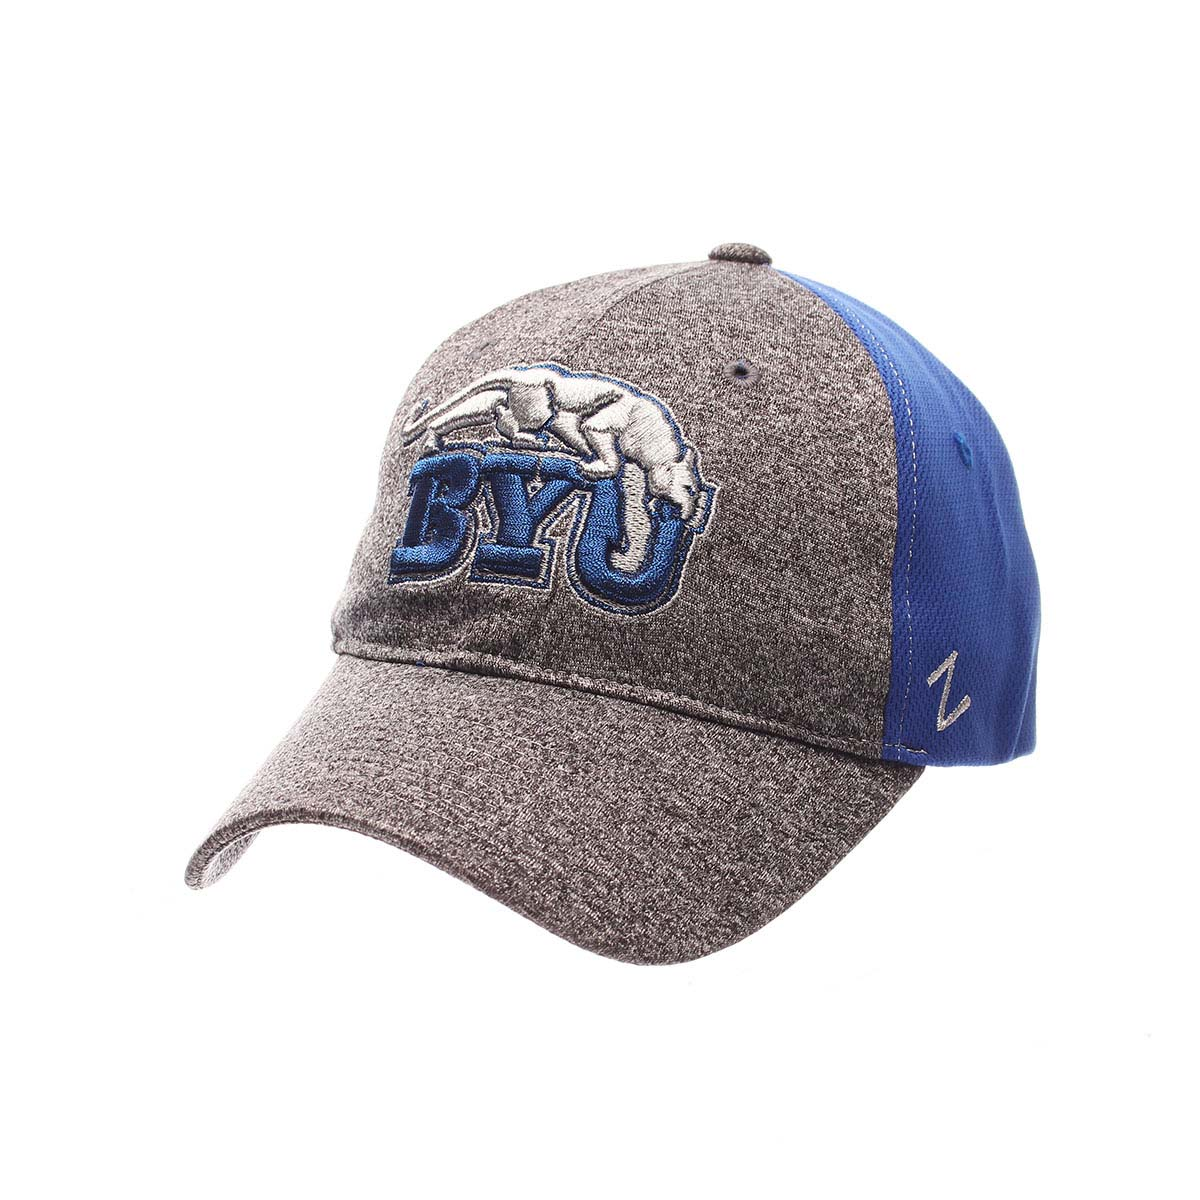 BYU Cougars Womens Harmony Snapback Hat (Gray) by Zephyr